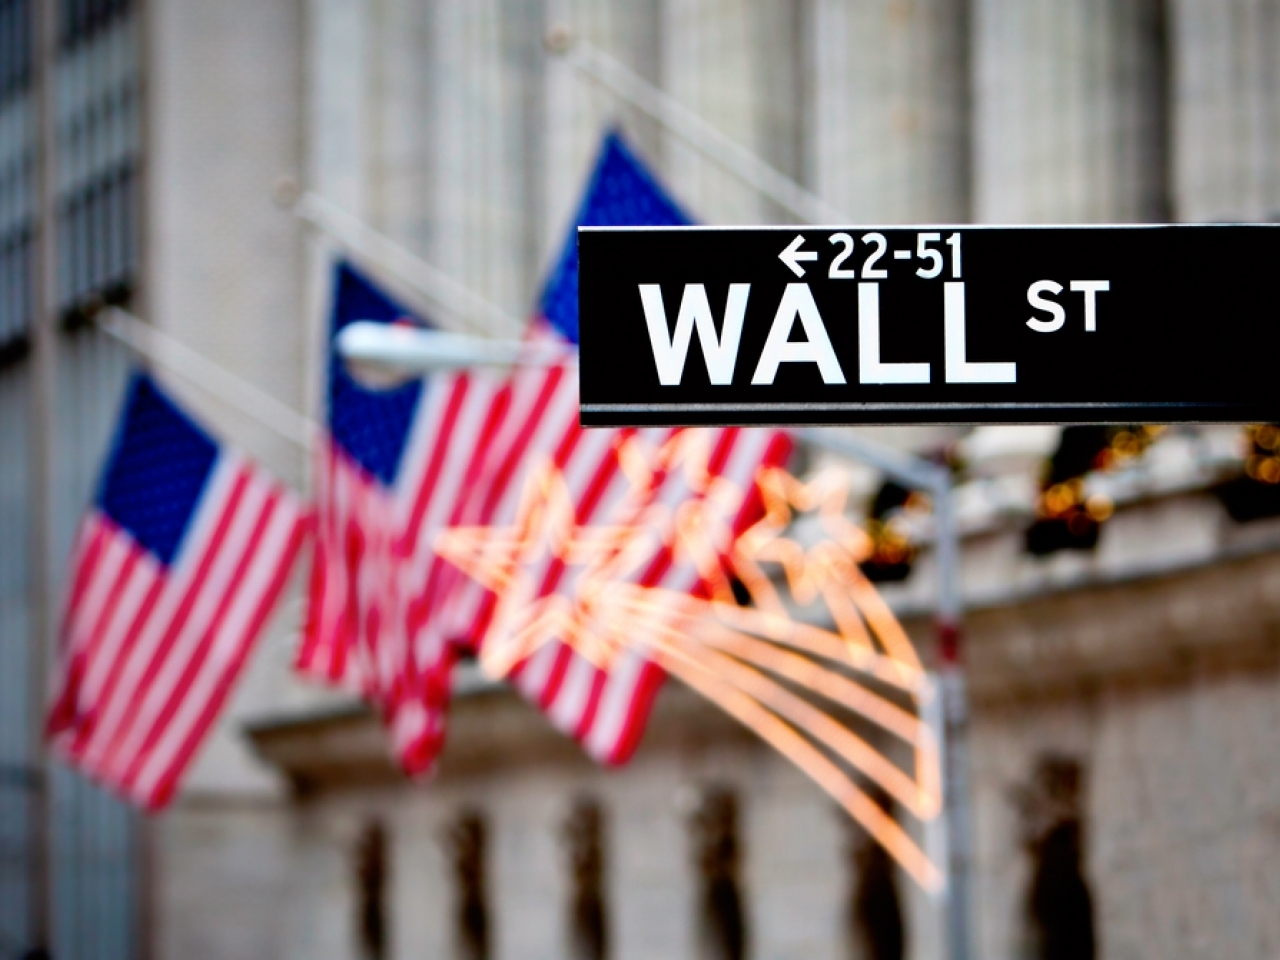 Wall Street enjoyed a relatively strong session amid an upbeat earnings season. File image: Shutterstock